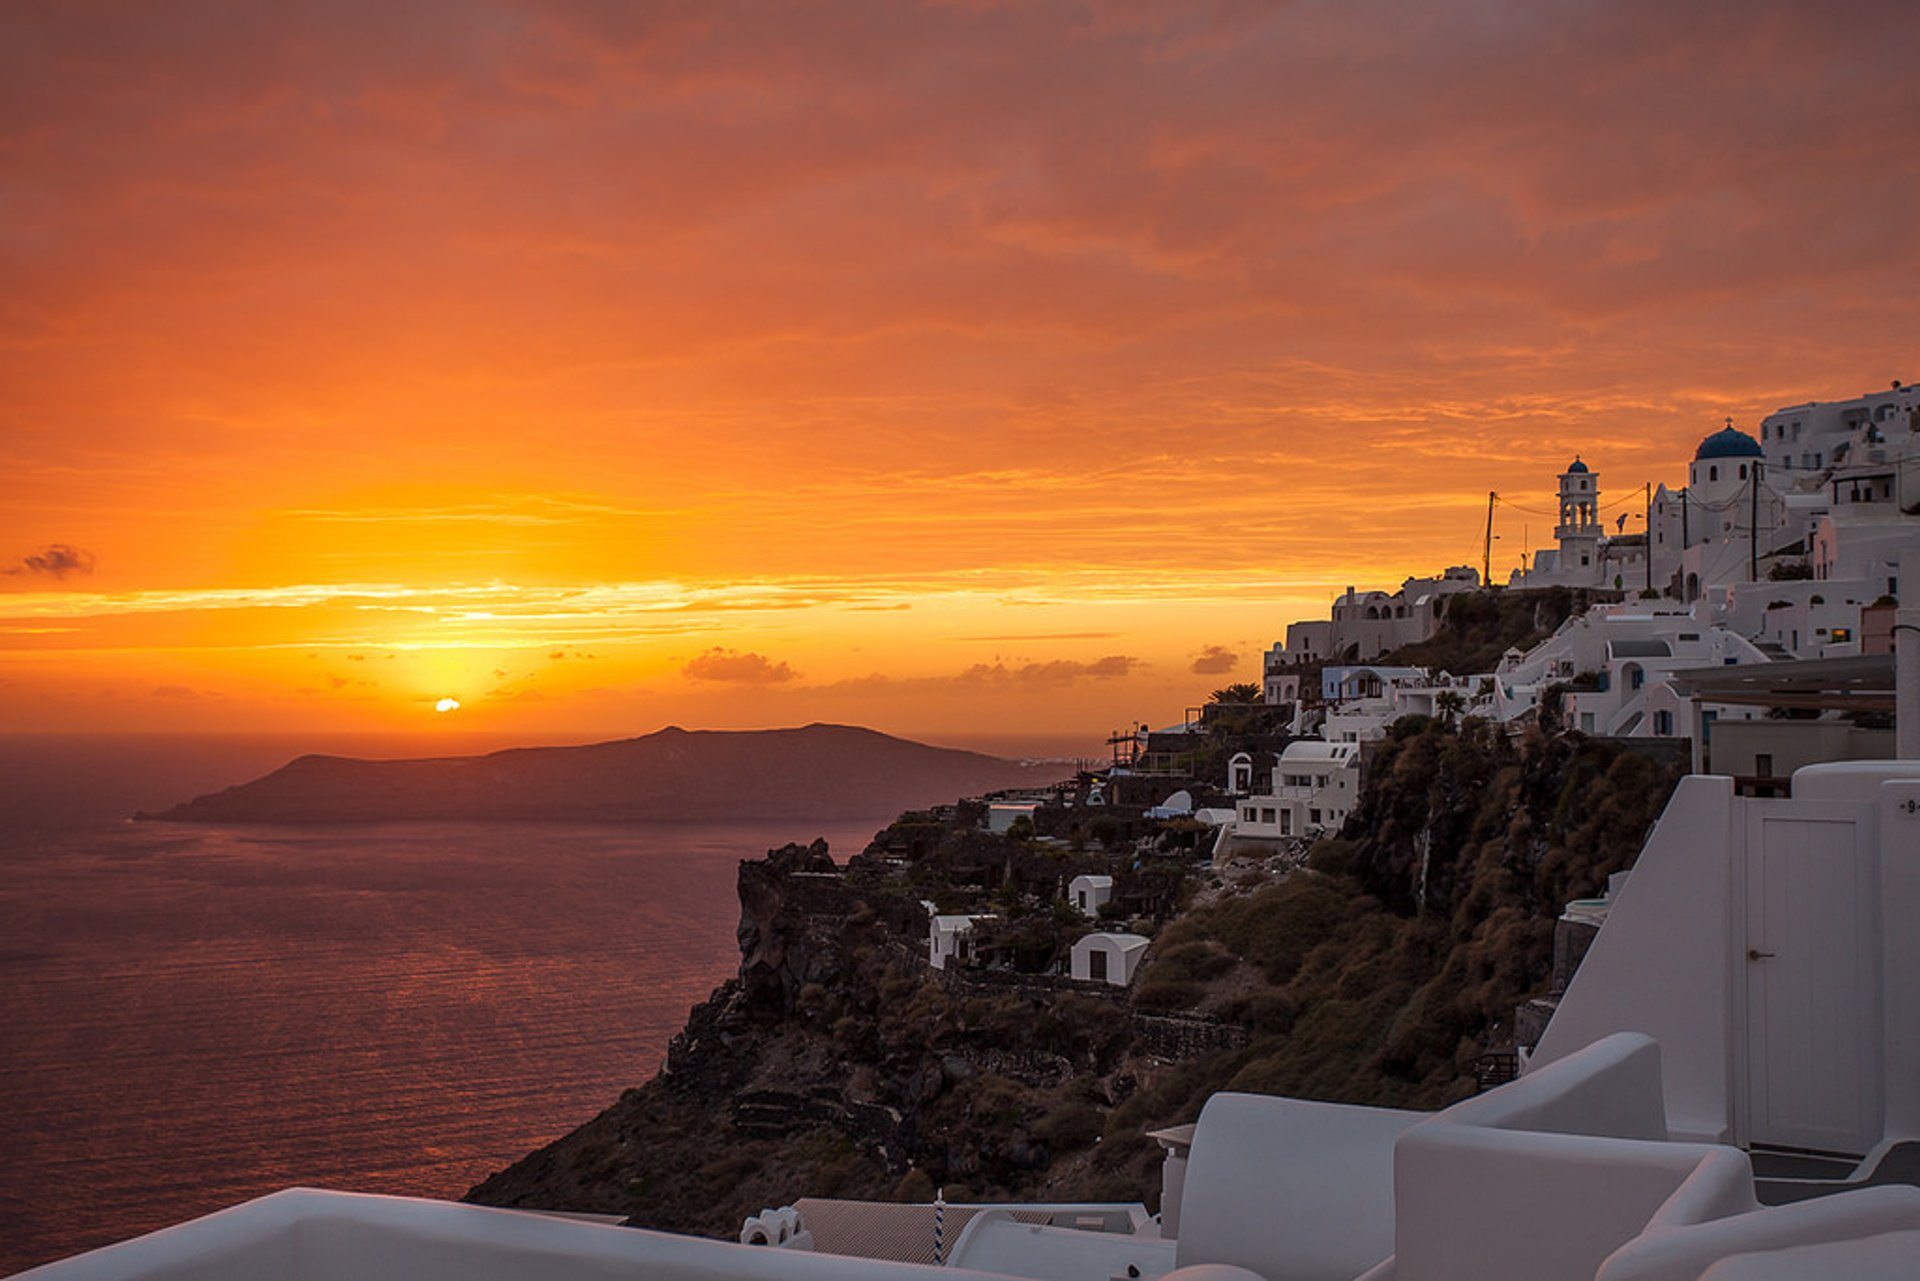 Breathtaking Sunsets in Santorini 2020 - Best Time